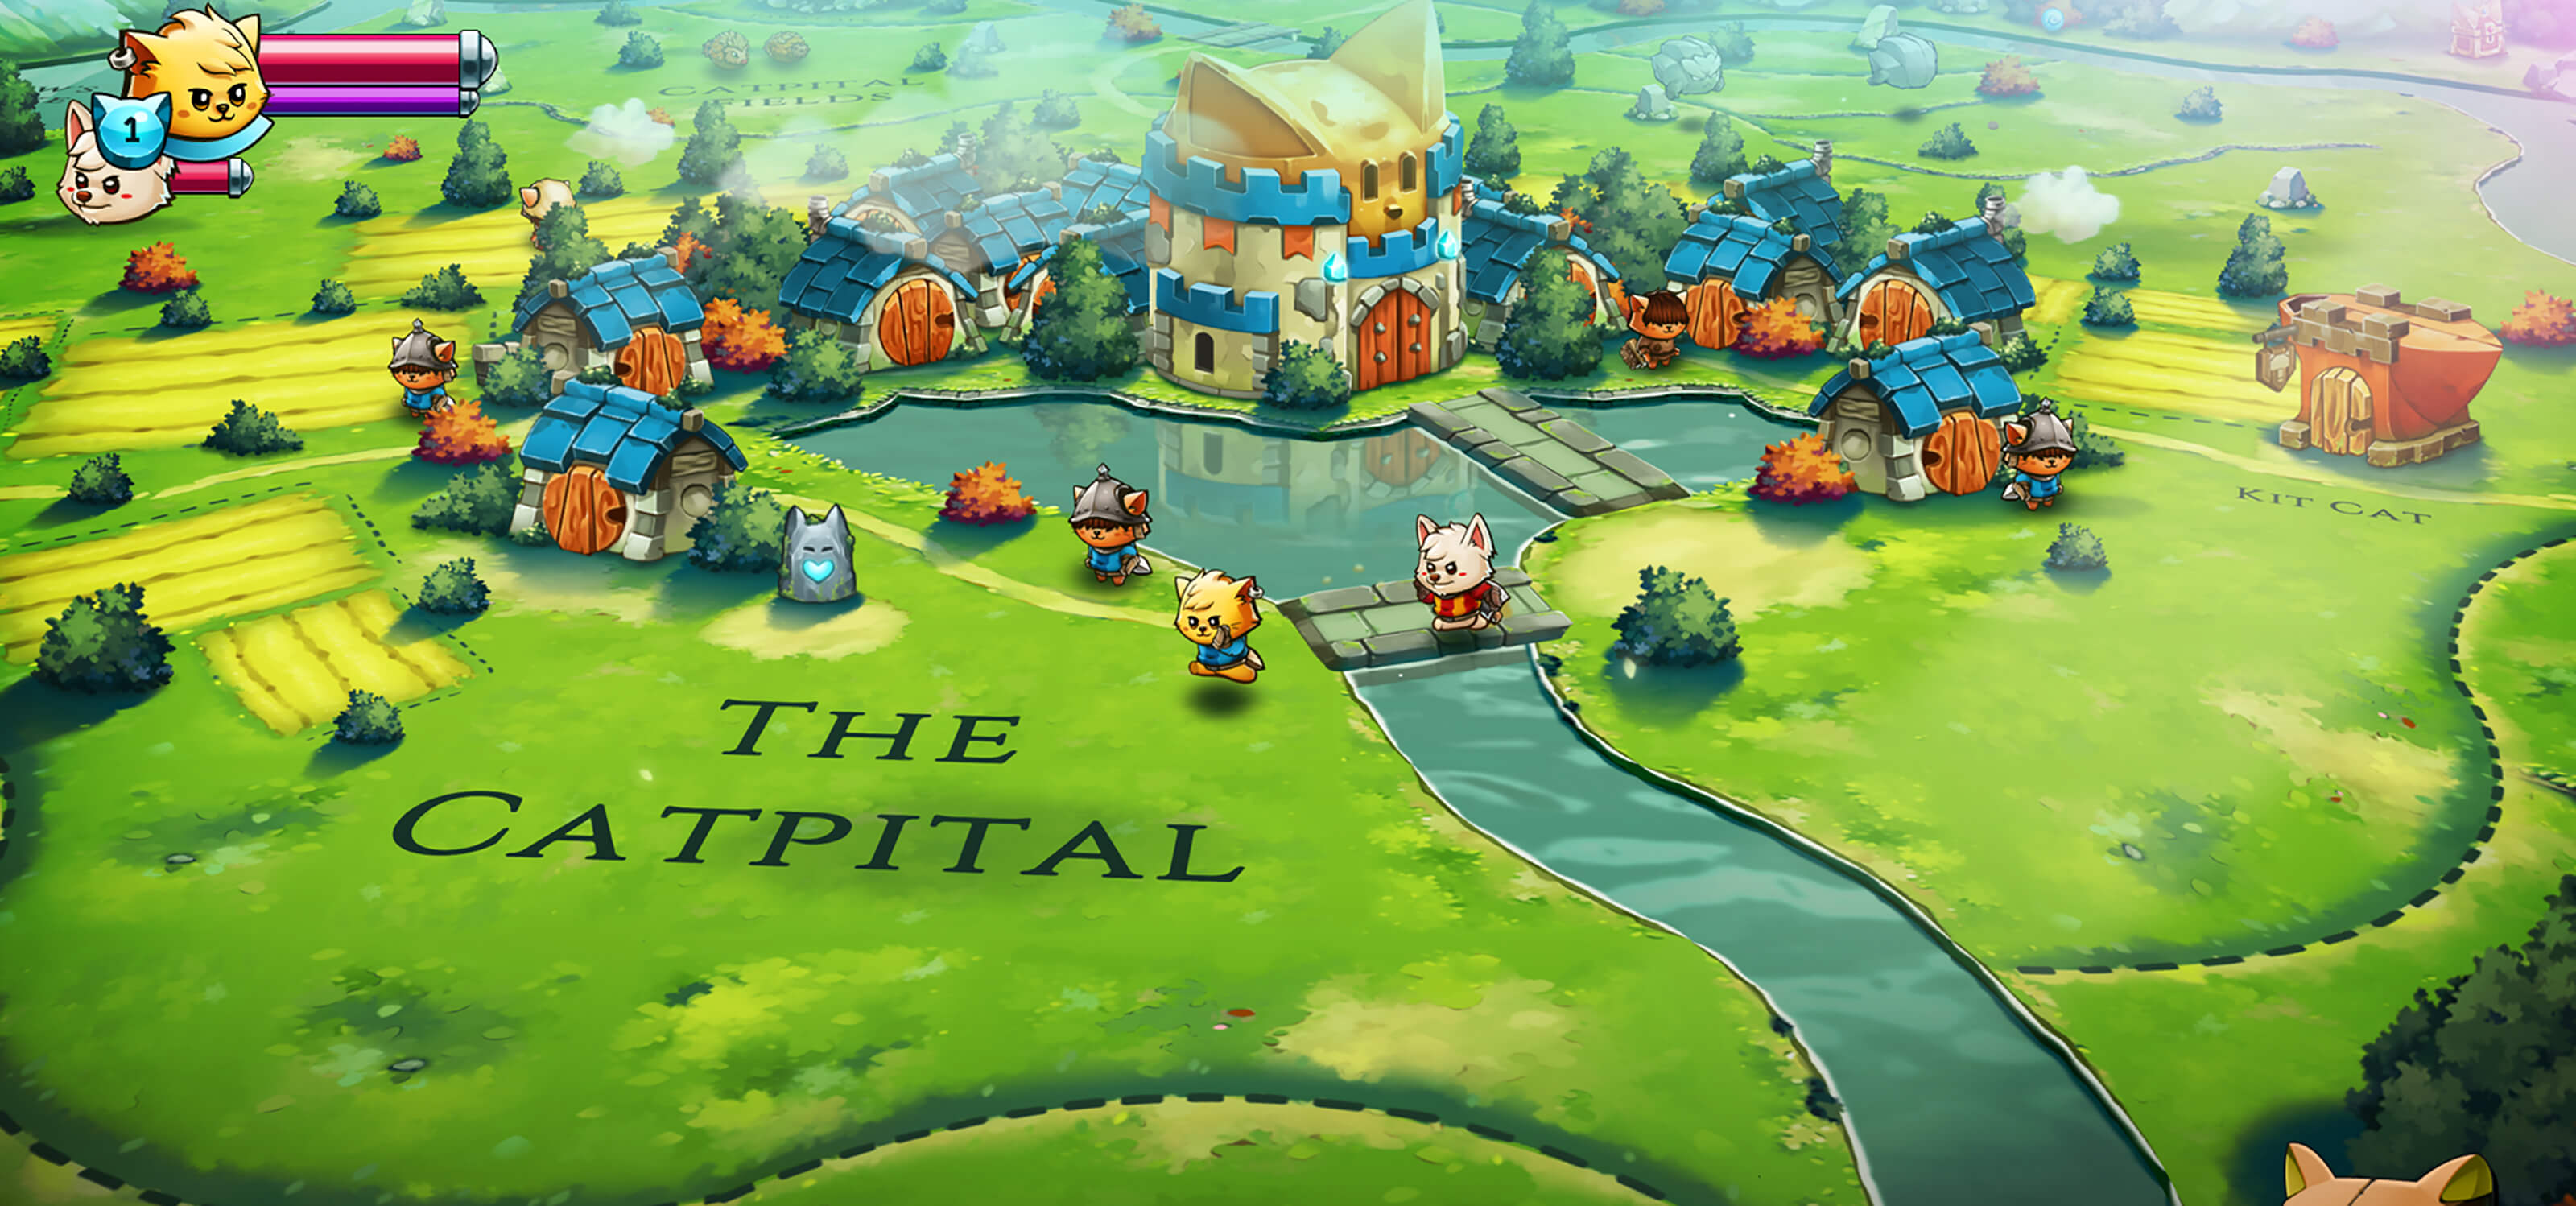 Cat Quest 2 screenshot: Animal character sprites move across a map of the world covered in fields, rivers, and villages.